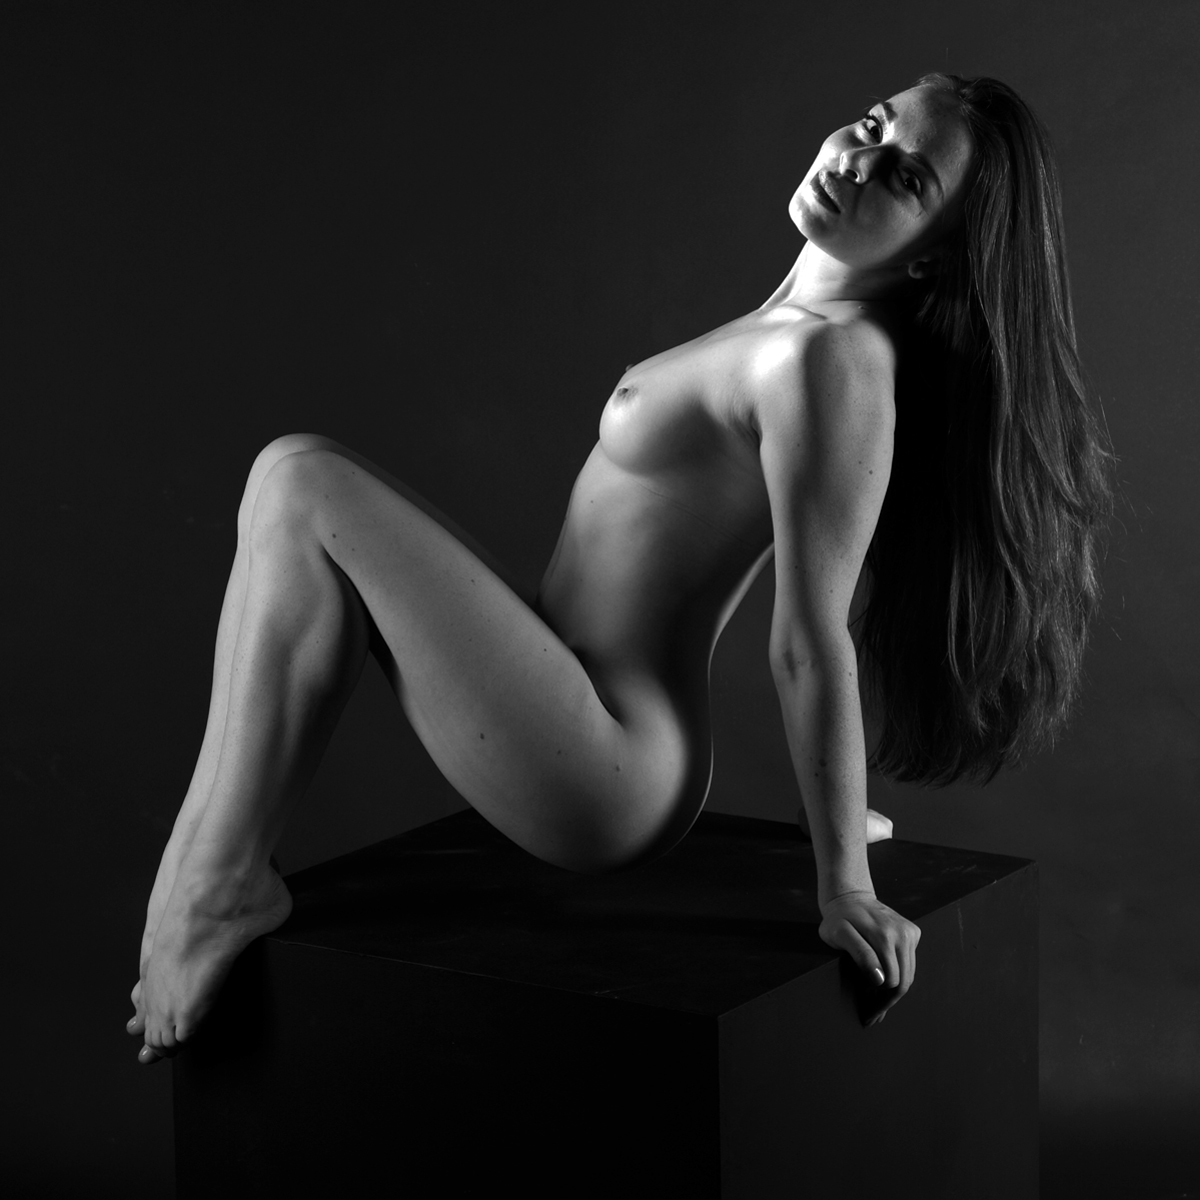 woman artistic and Black white nudes